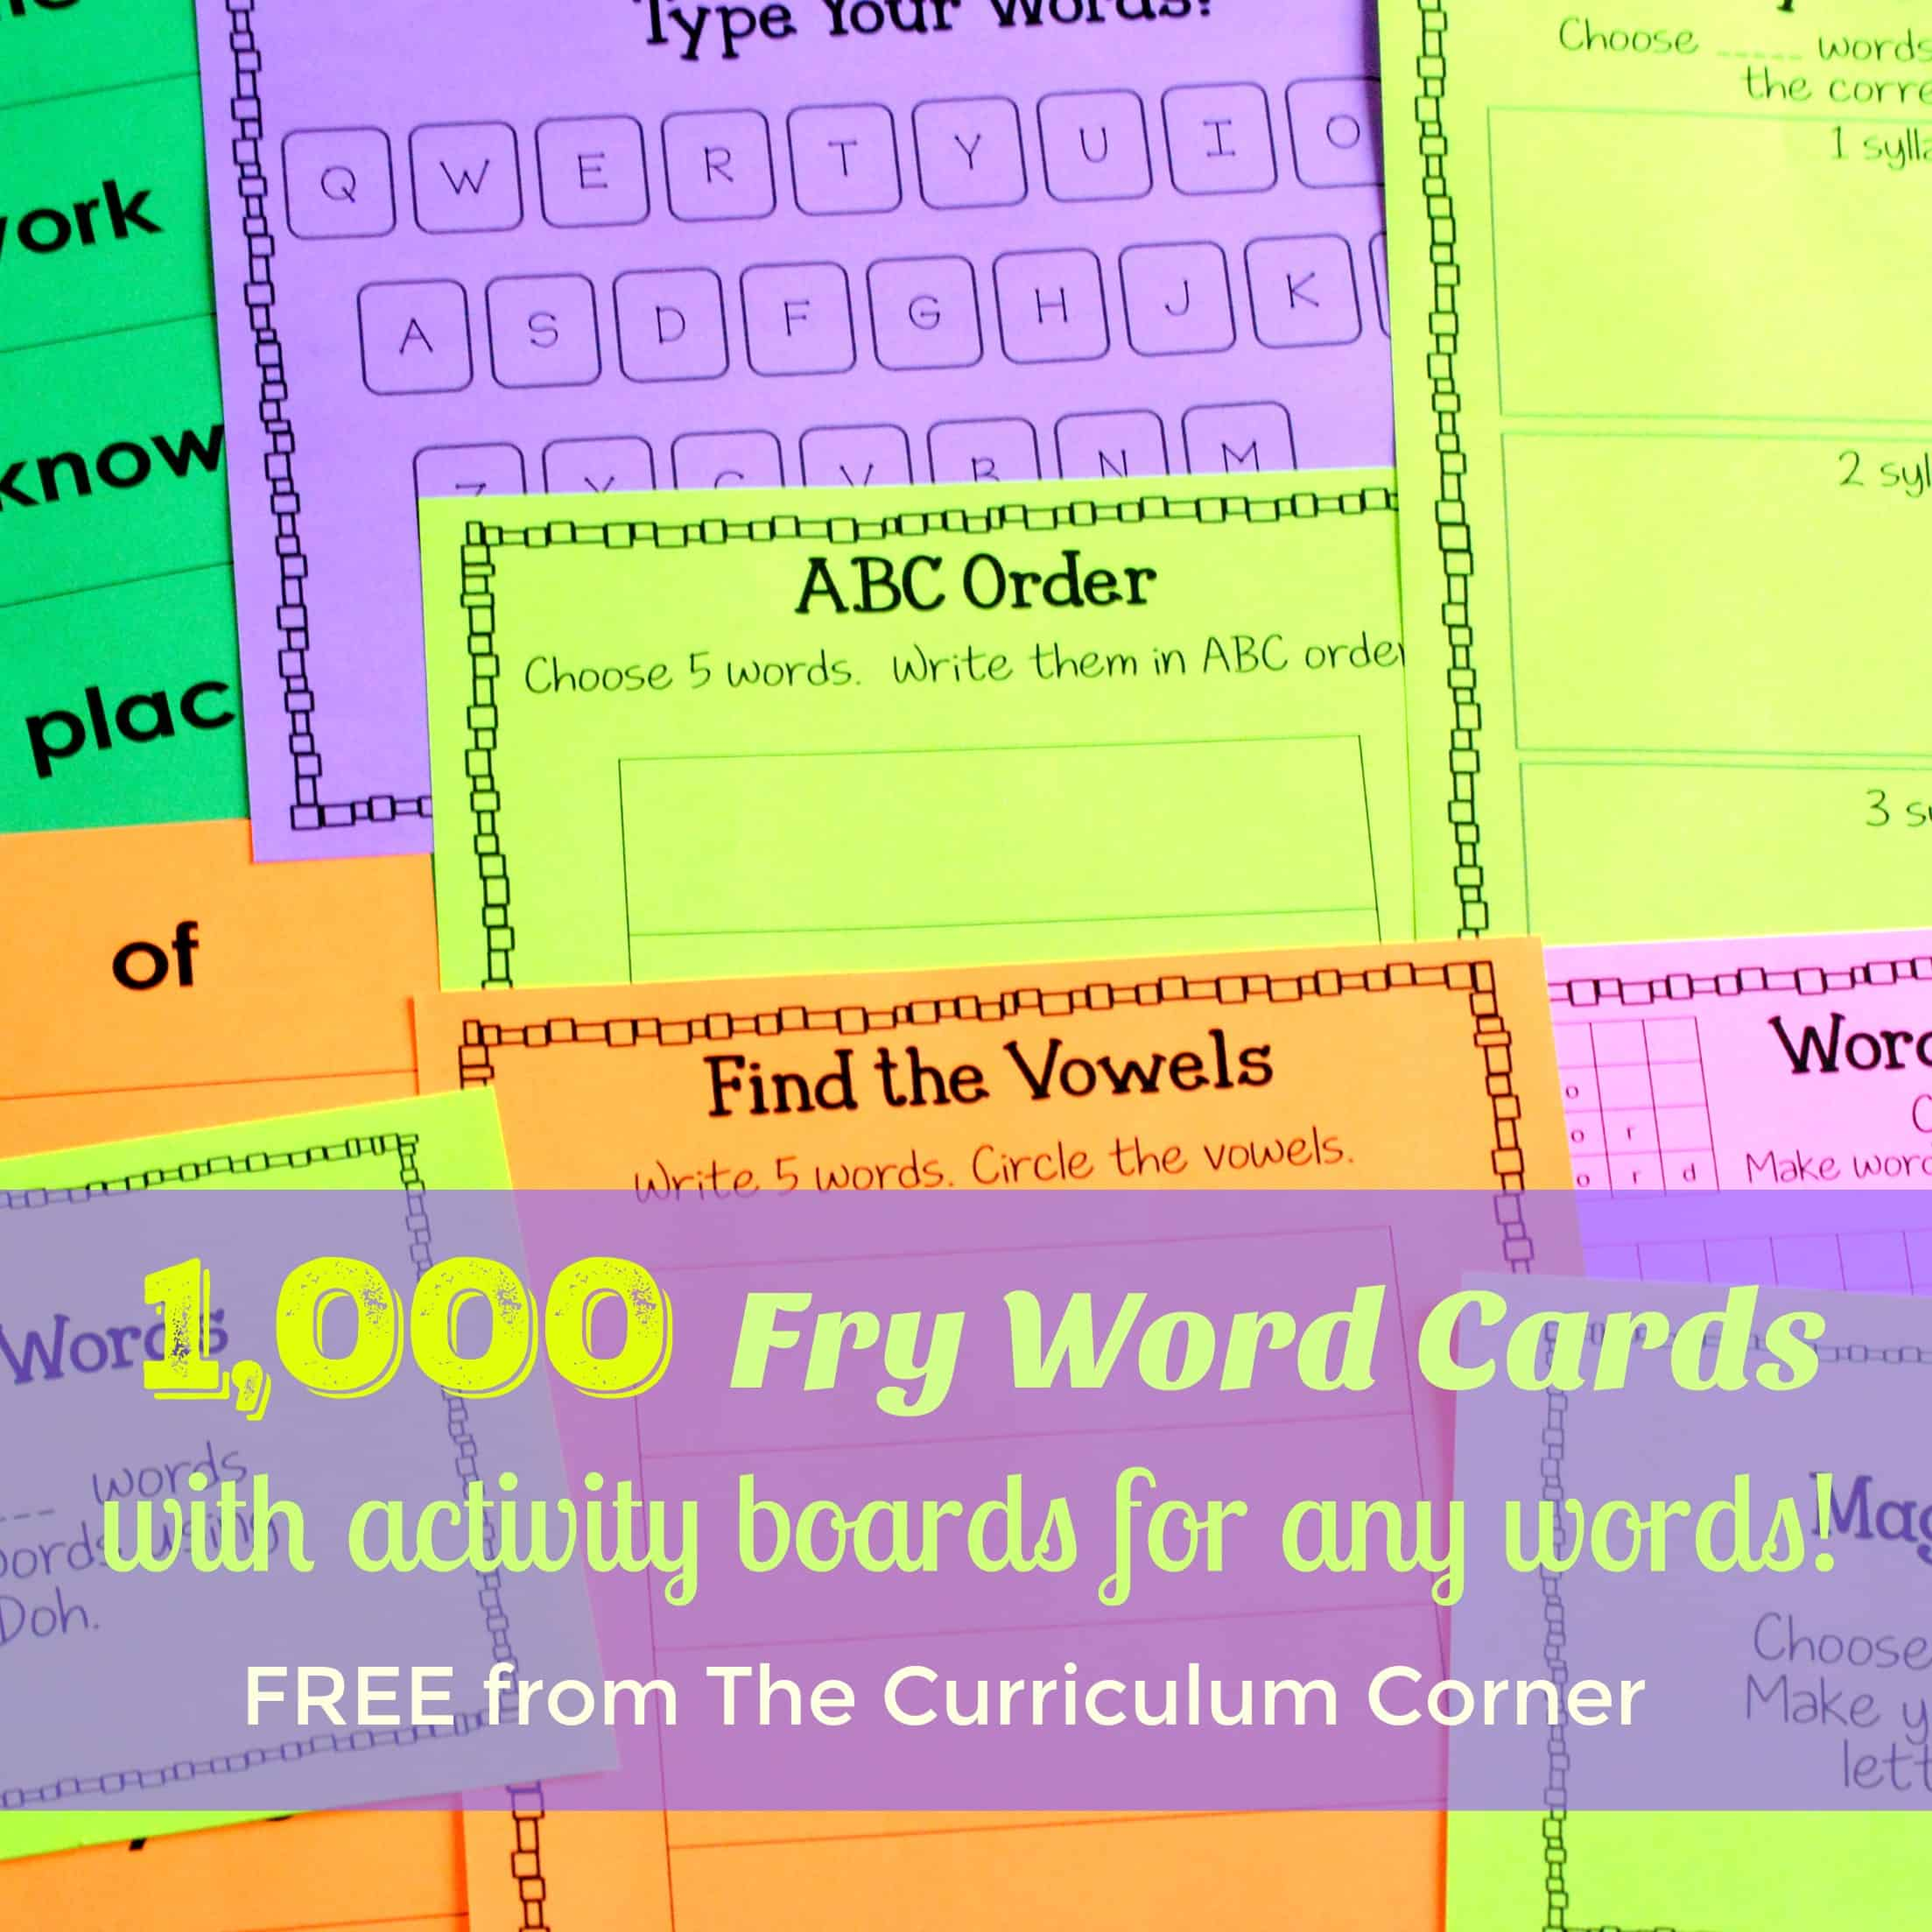 Worksheet Fry Word Cards fry word cards activity boards the curriculum corner 123